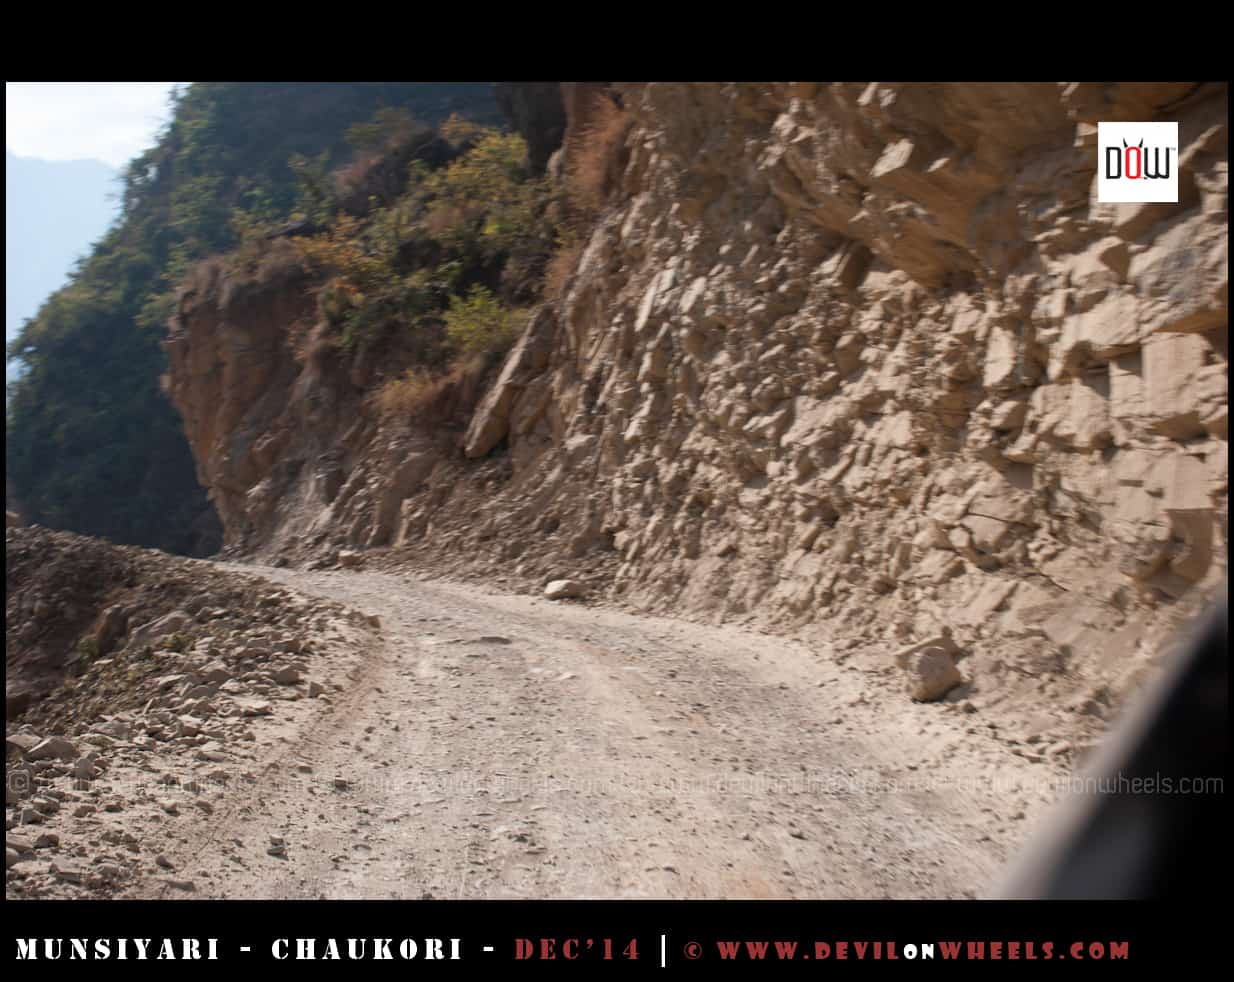 Road conditions between Jaulijibi - Dharchula